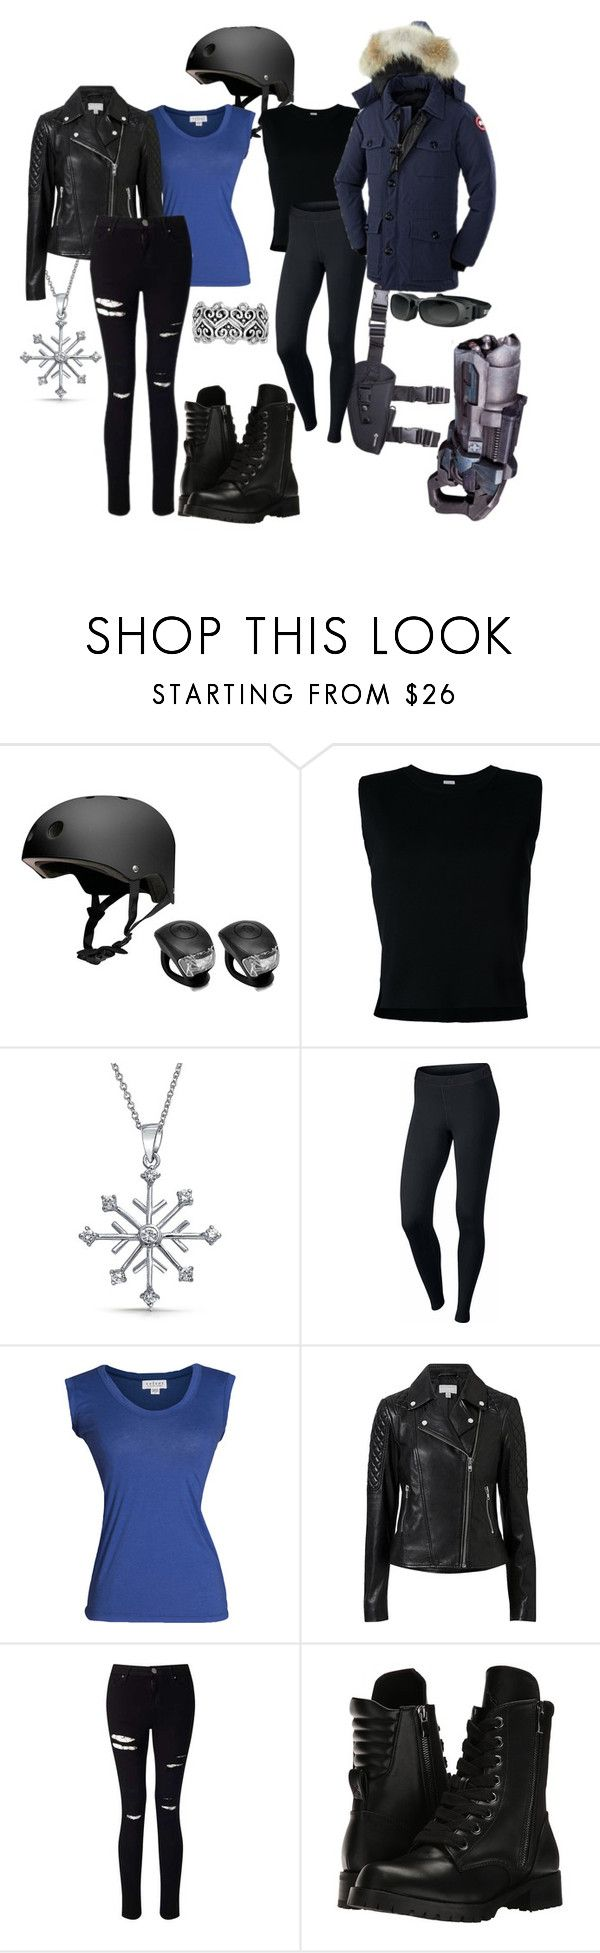 """Leonard Snart/ Captain Cold Genderbend"" by music-books-life ❤ liked on Polyvore featuring Feral, Rito, Bling Jewelry, NIKE, Velvet by Graham & Spencer, Witchery, Miss Selfridge and Capezio"